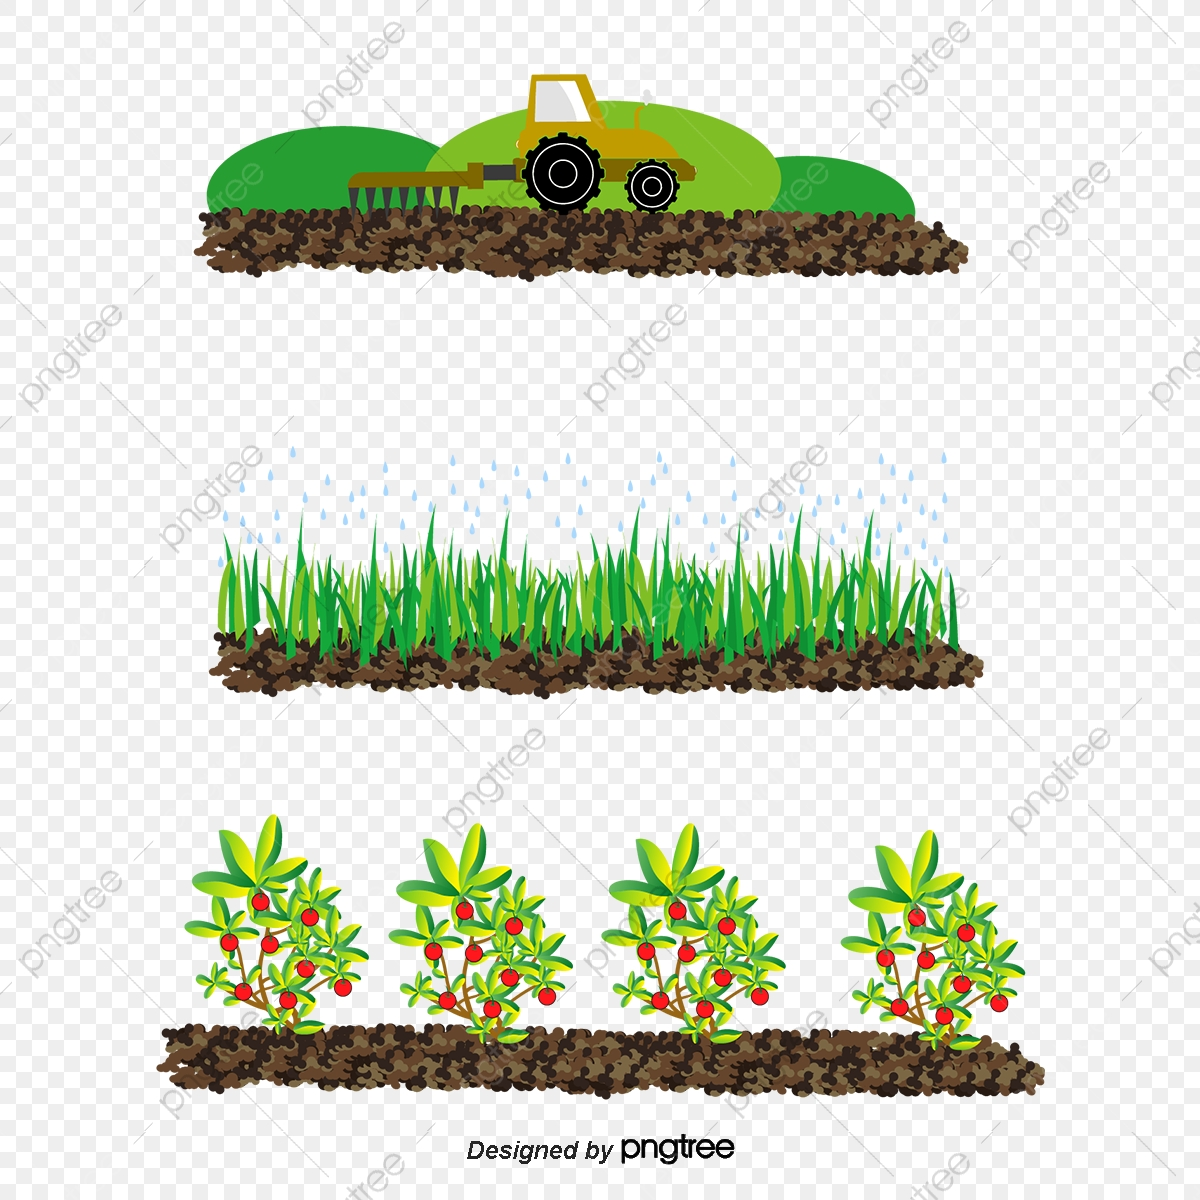 Agriculturist Vector Clipart Illustrations. 2,280 Agriculturist clip art  vector EPS drawings available to search from thousands of royalty free  illustrators.